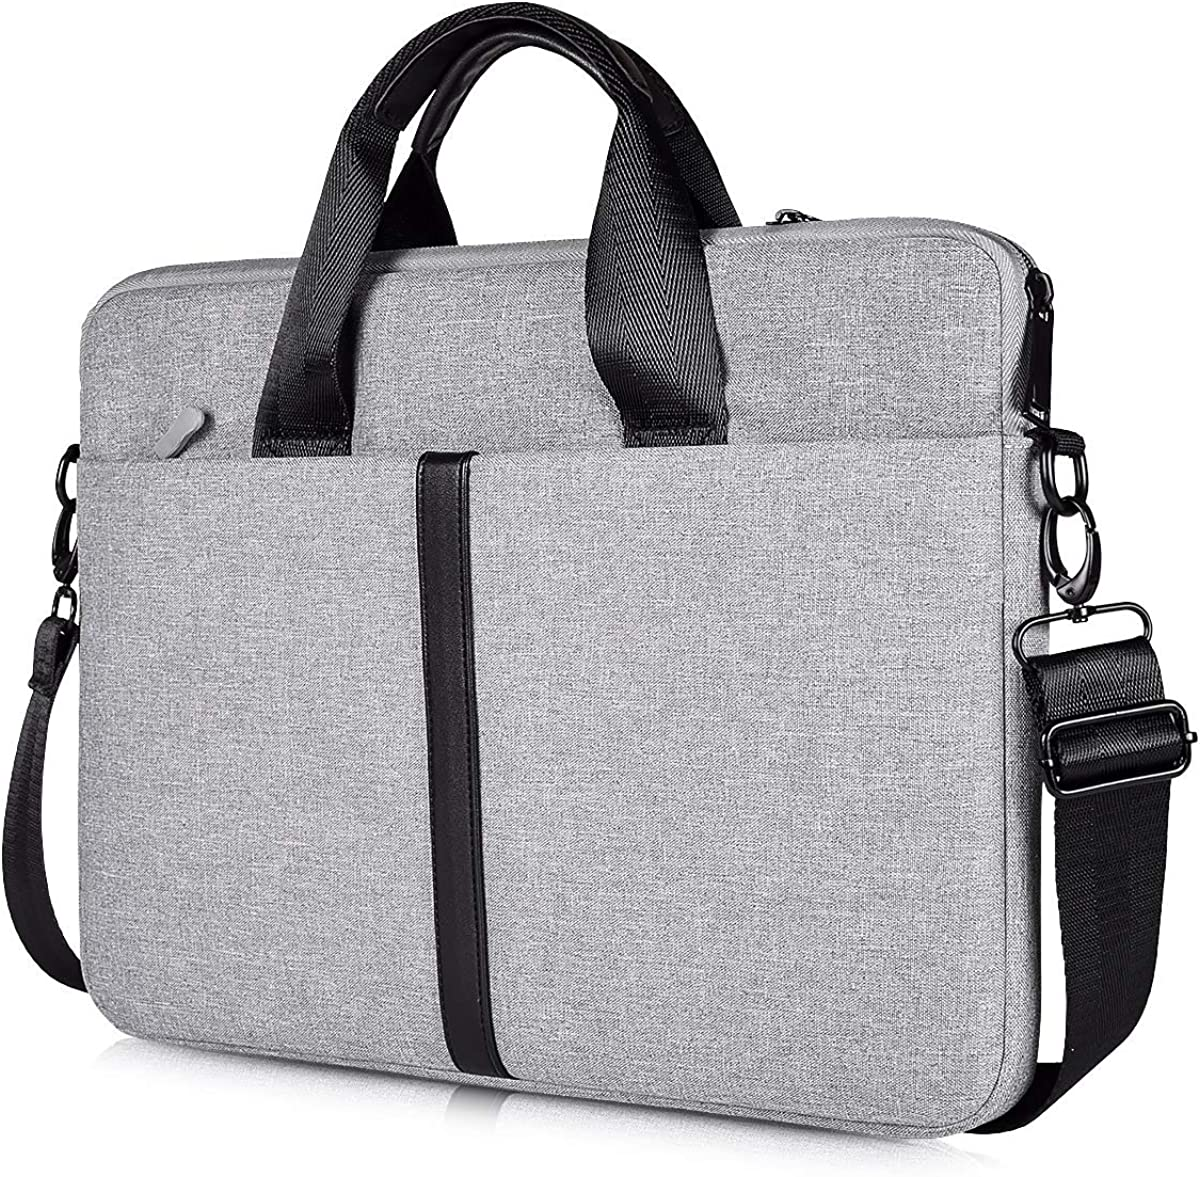 MacBook Asus Laptop Shoulder Bag Carrying Laptop Case 15.6 Inch Samsung Wonderful Aurora Computer Sleeve Cover with Handle Business Briefcase Protective Bag for Ultrabook Sony Notebook